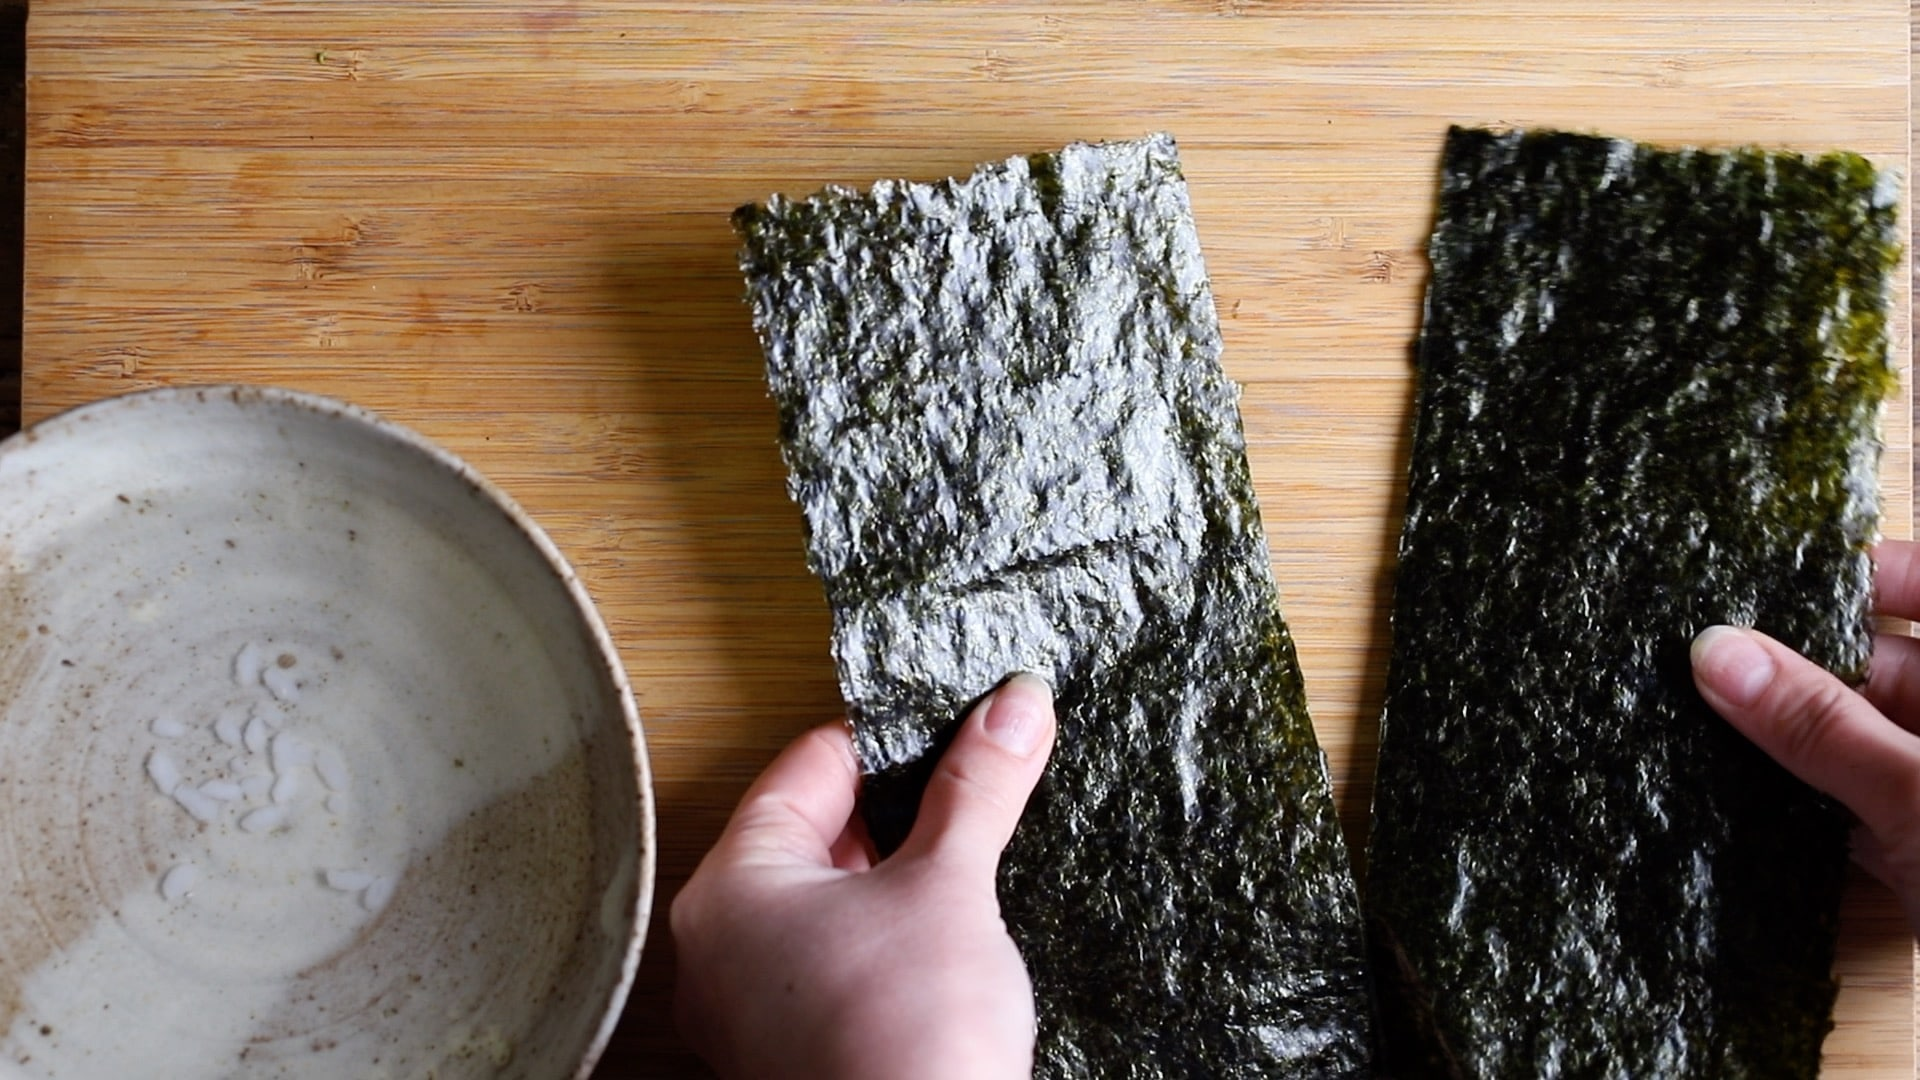 for maki sushi fold and cut the sheet of nori in half